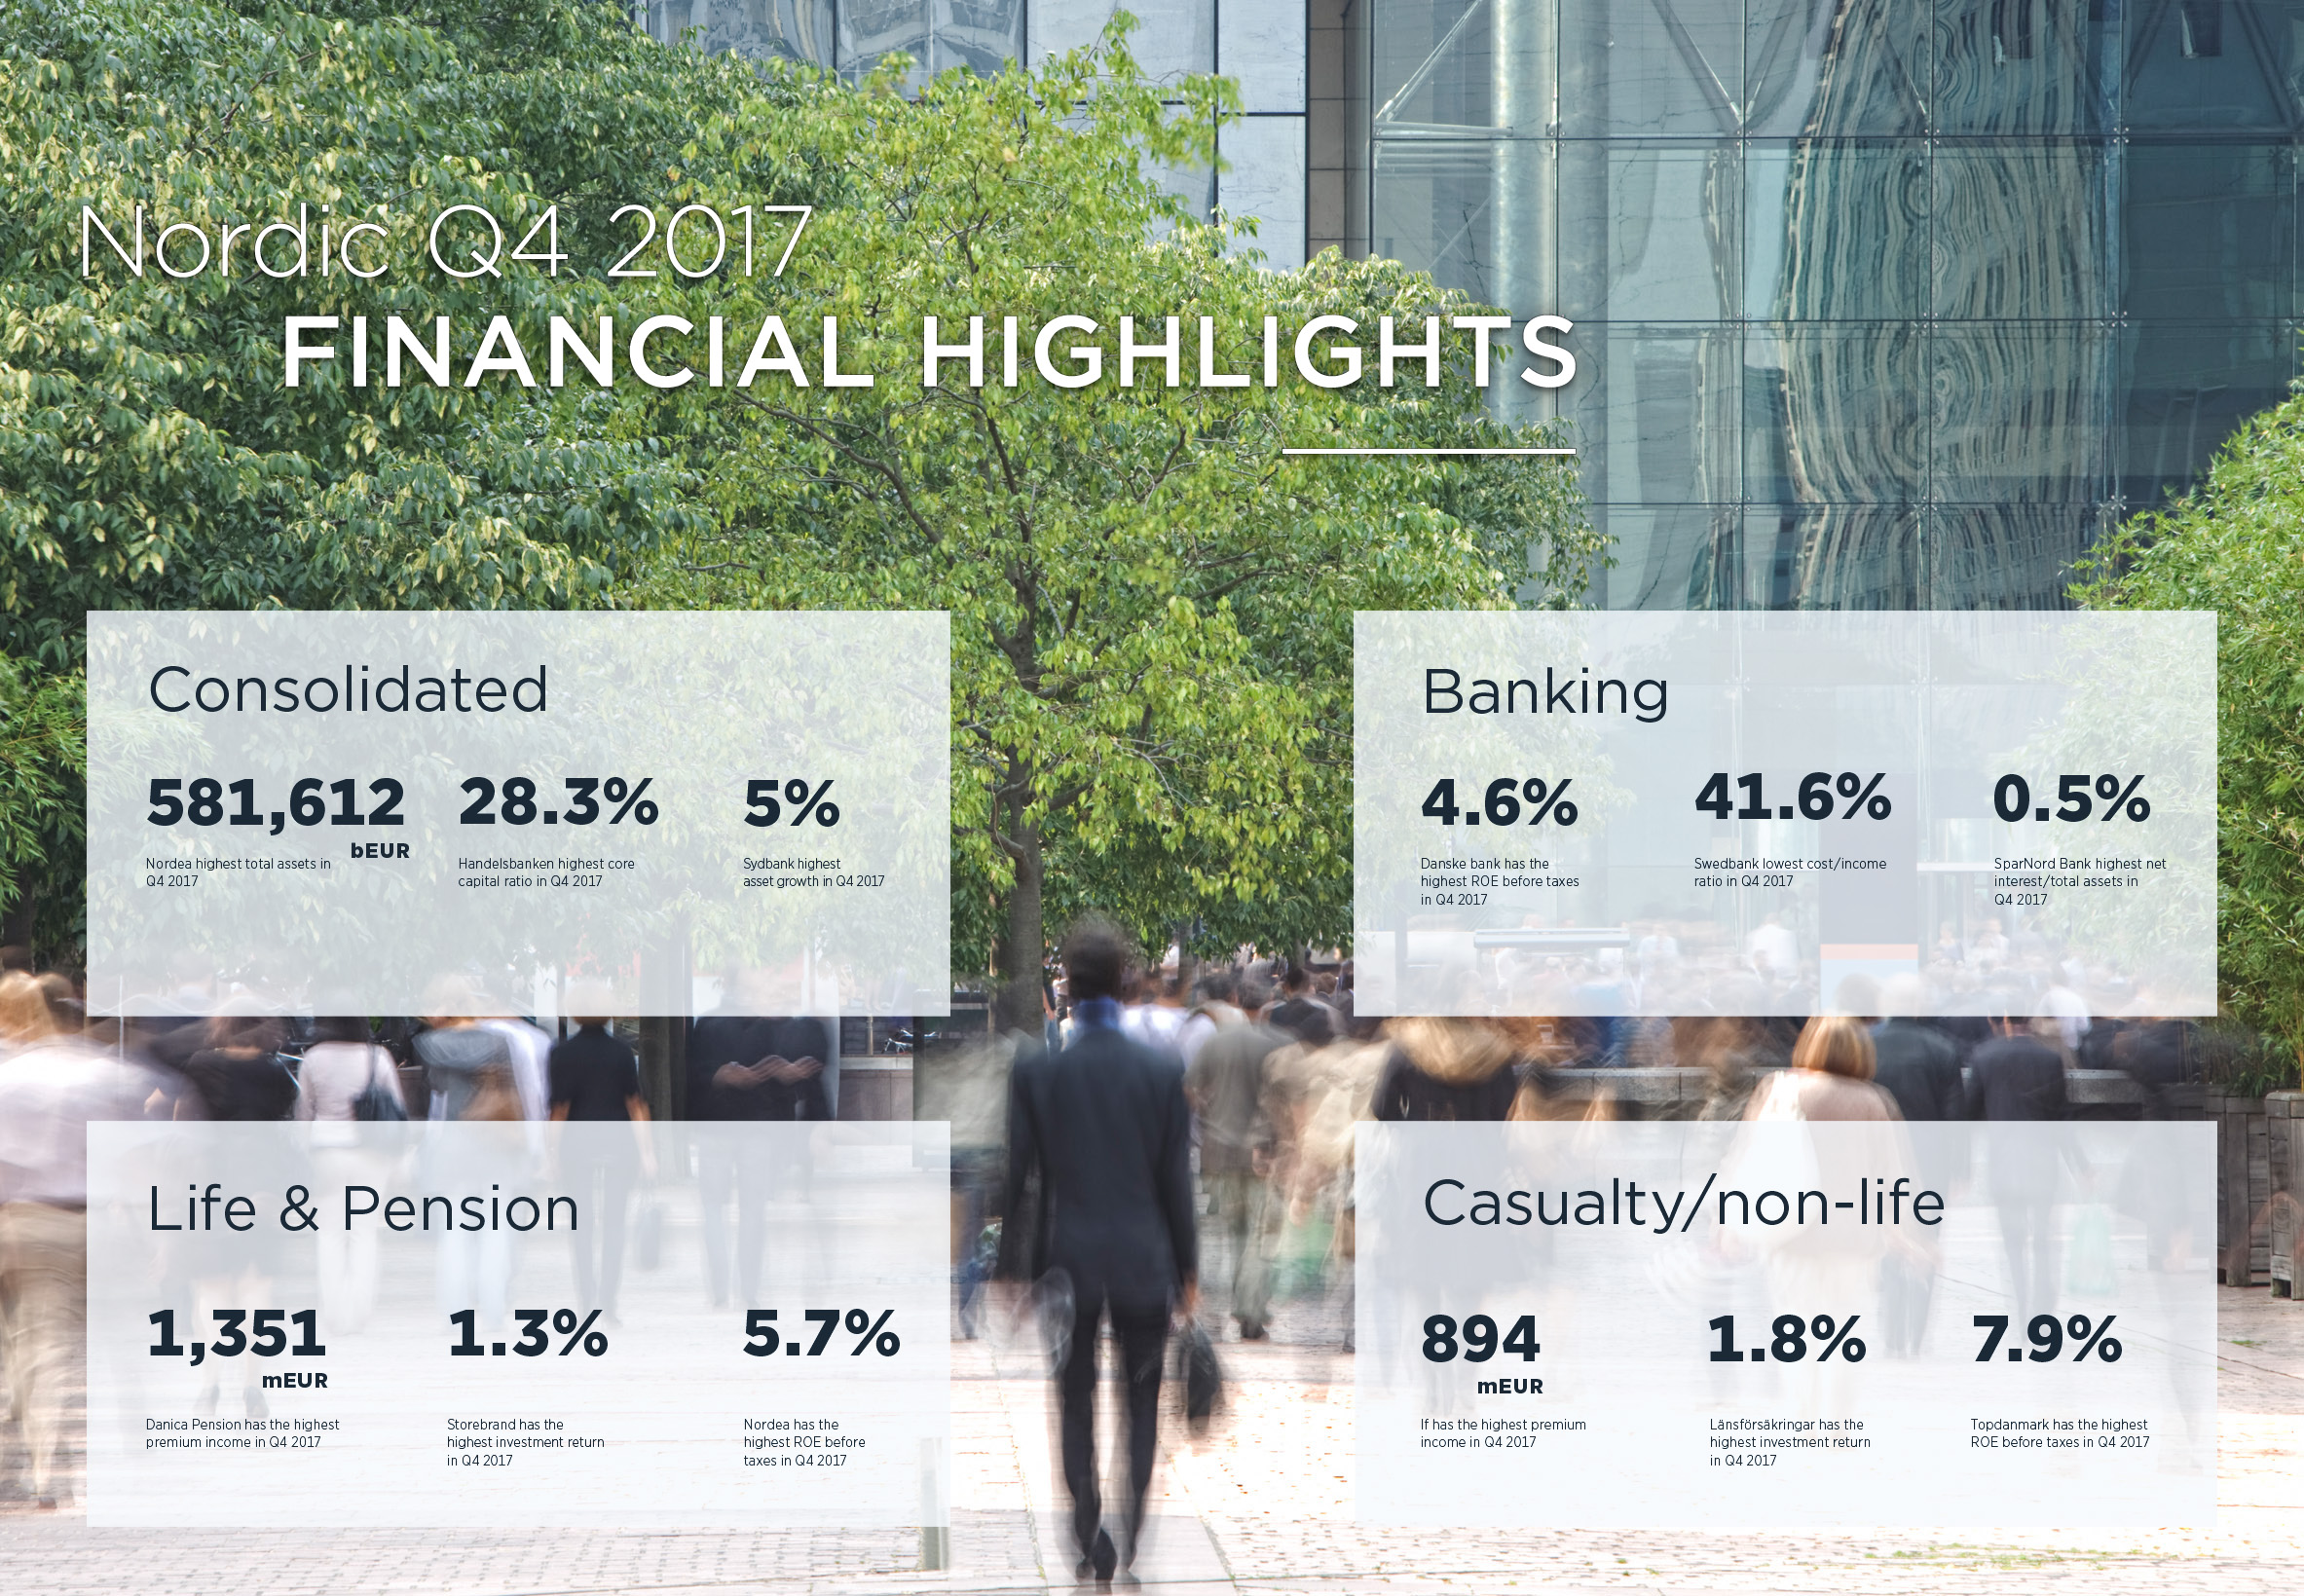 Nordic FS Highlights Q4 2017